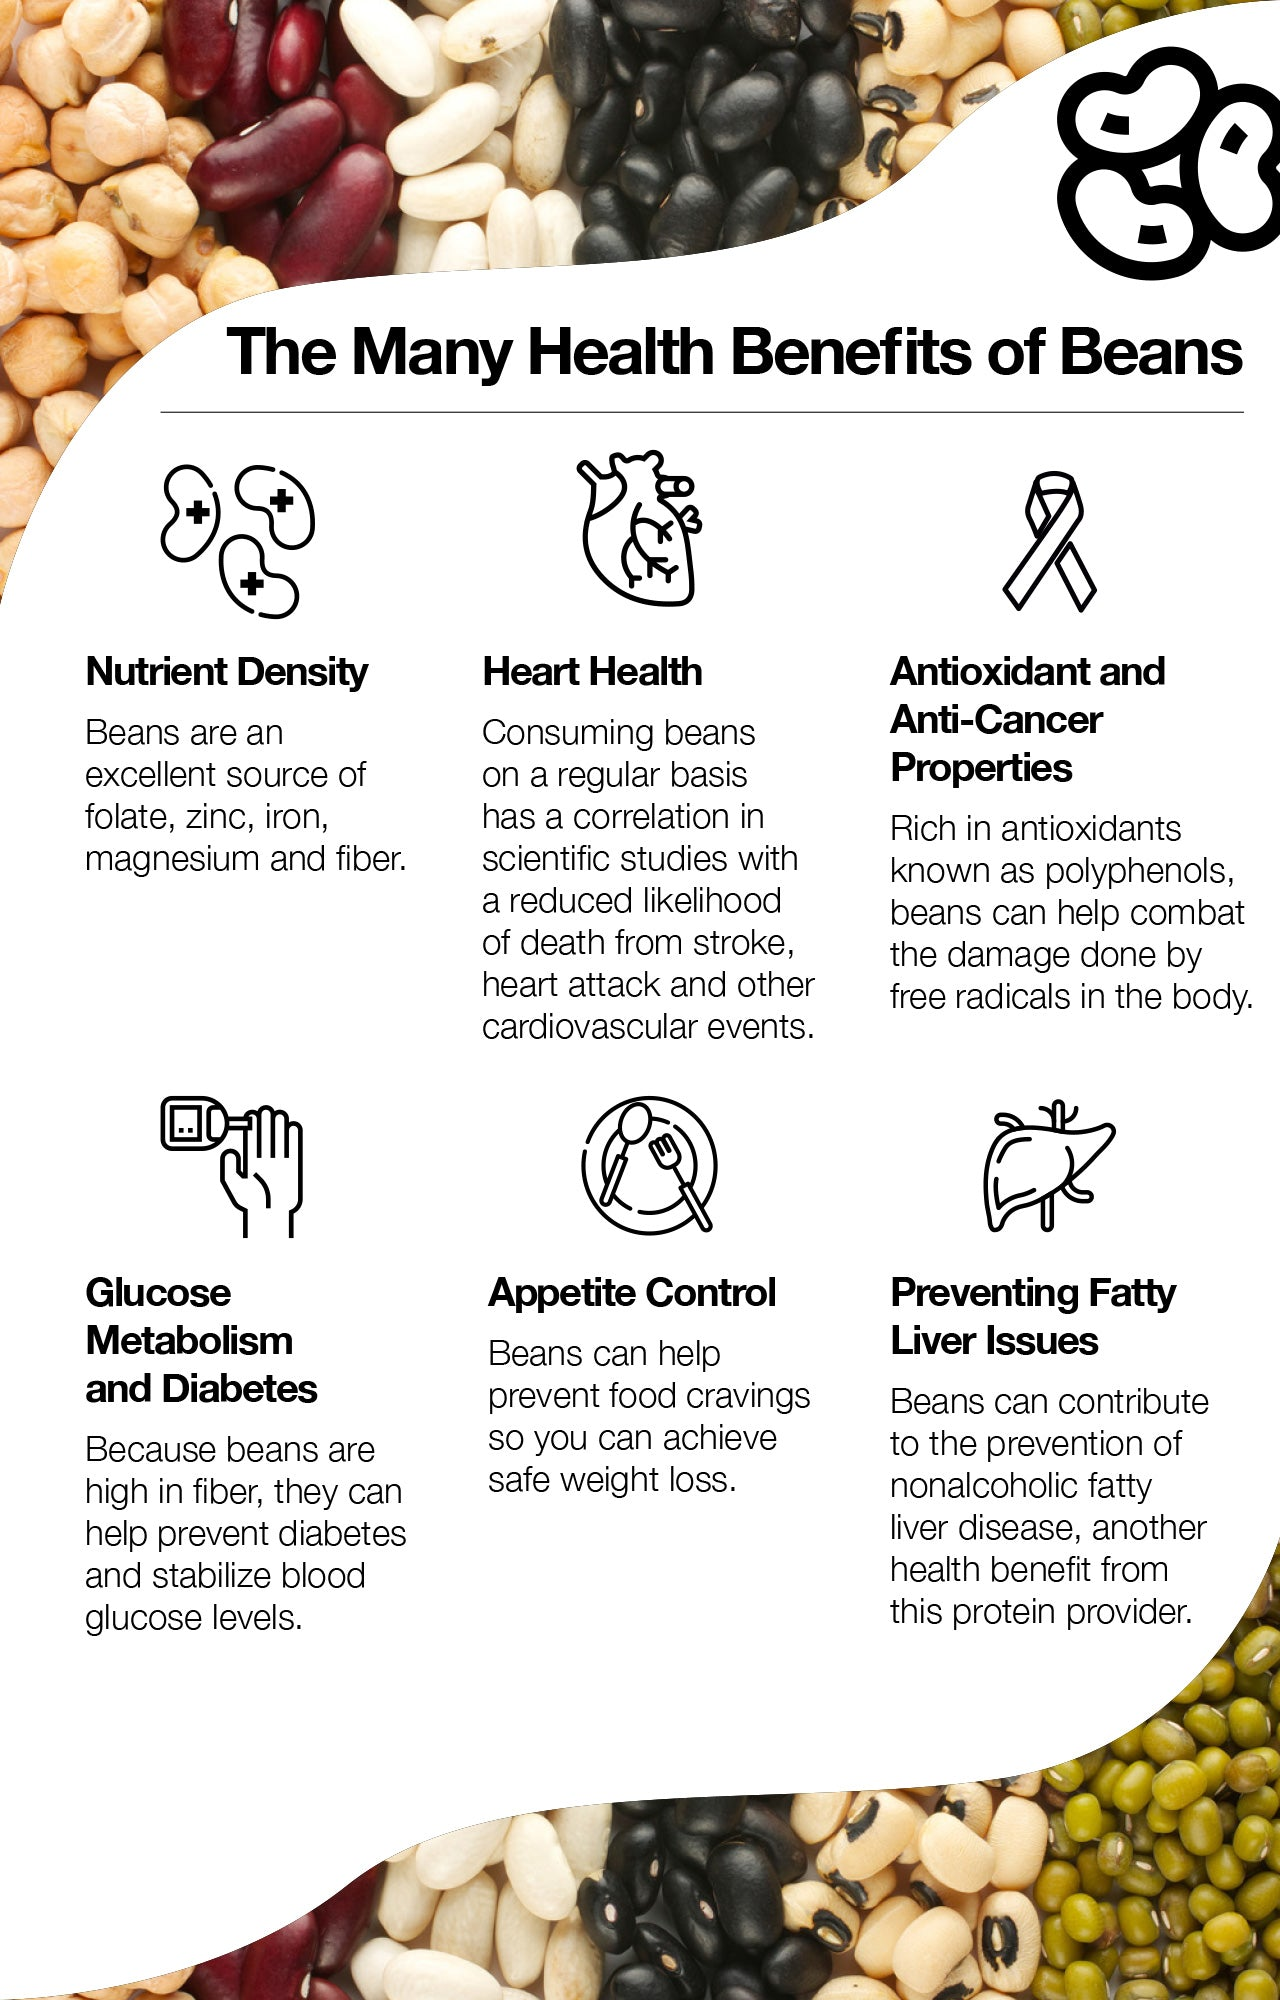 The Many Health Benefits of Beans